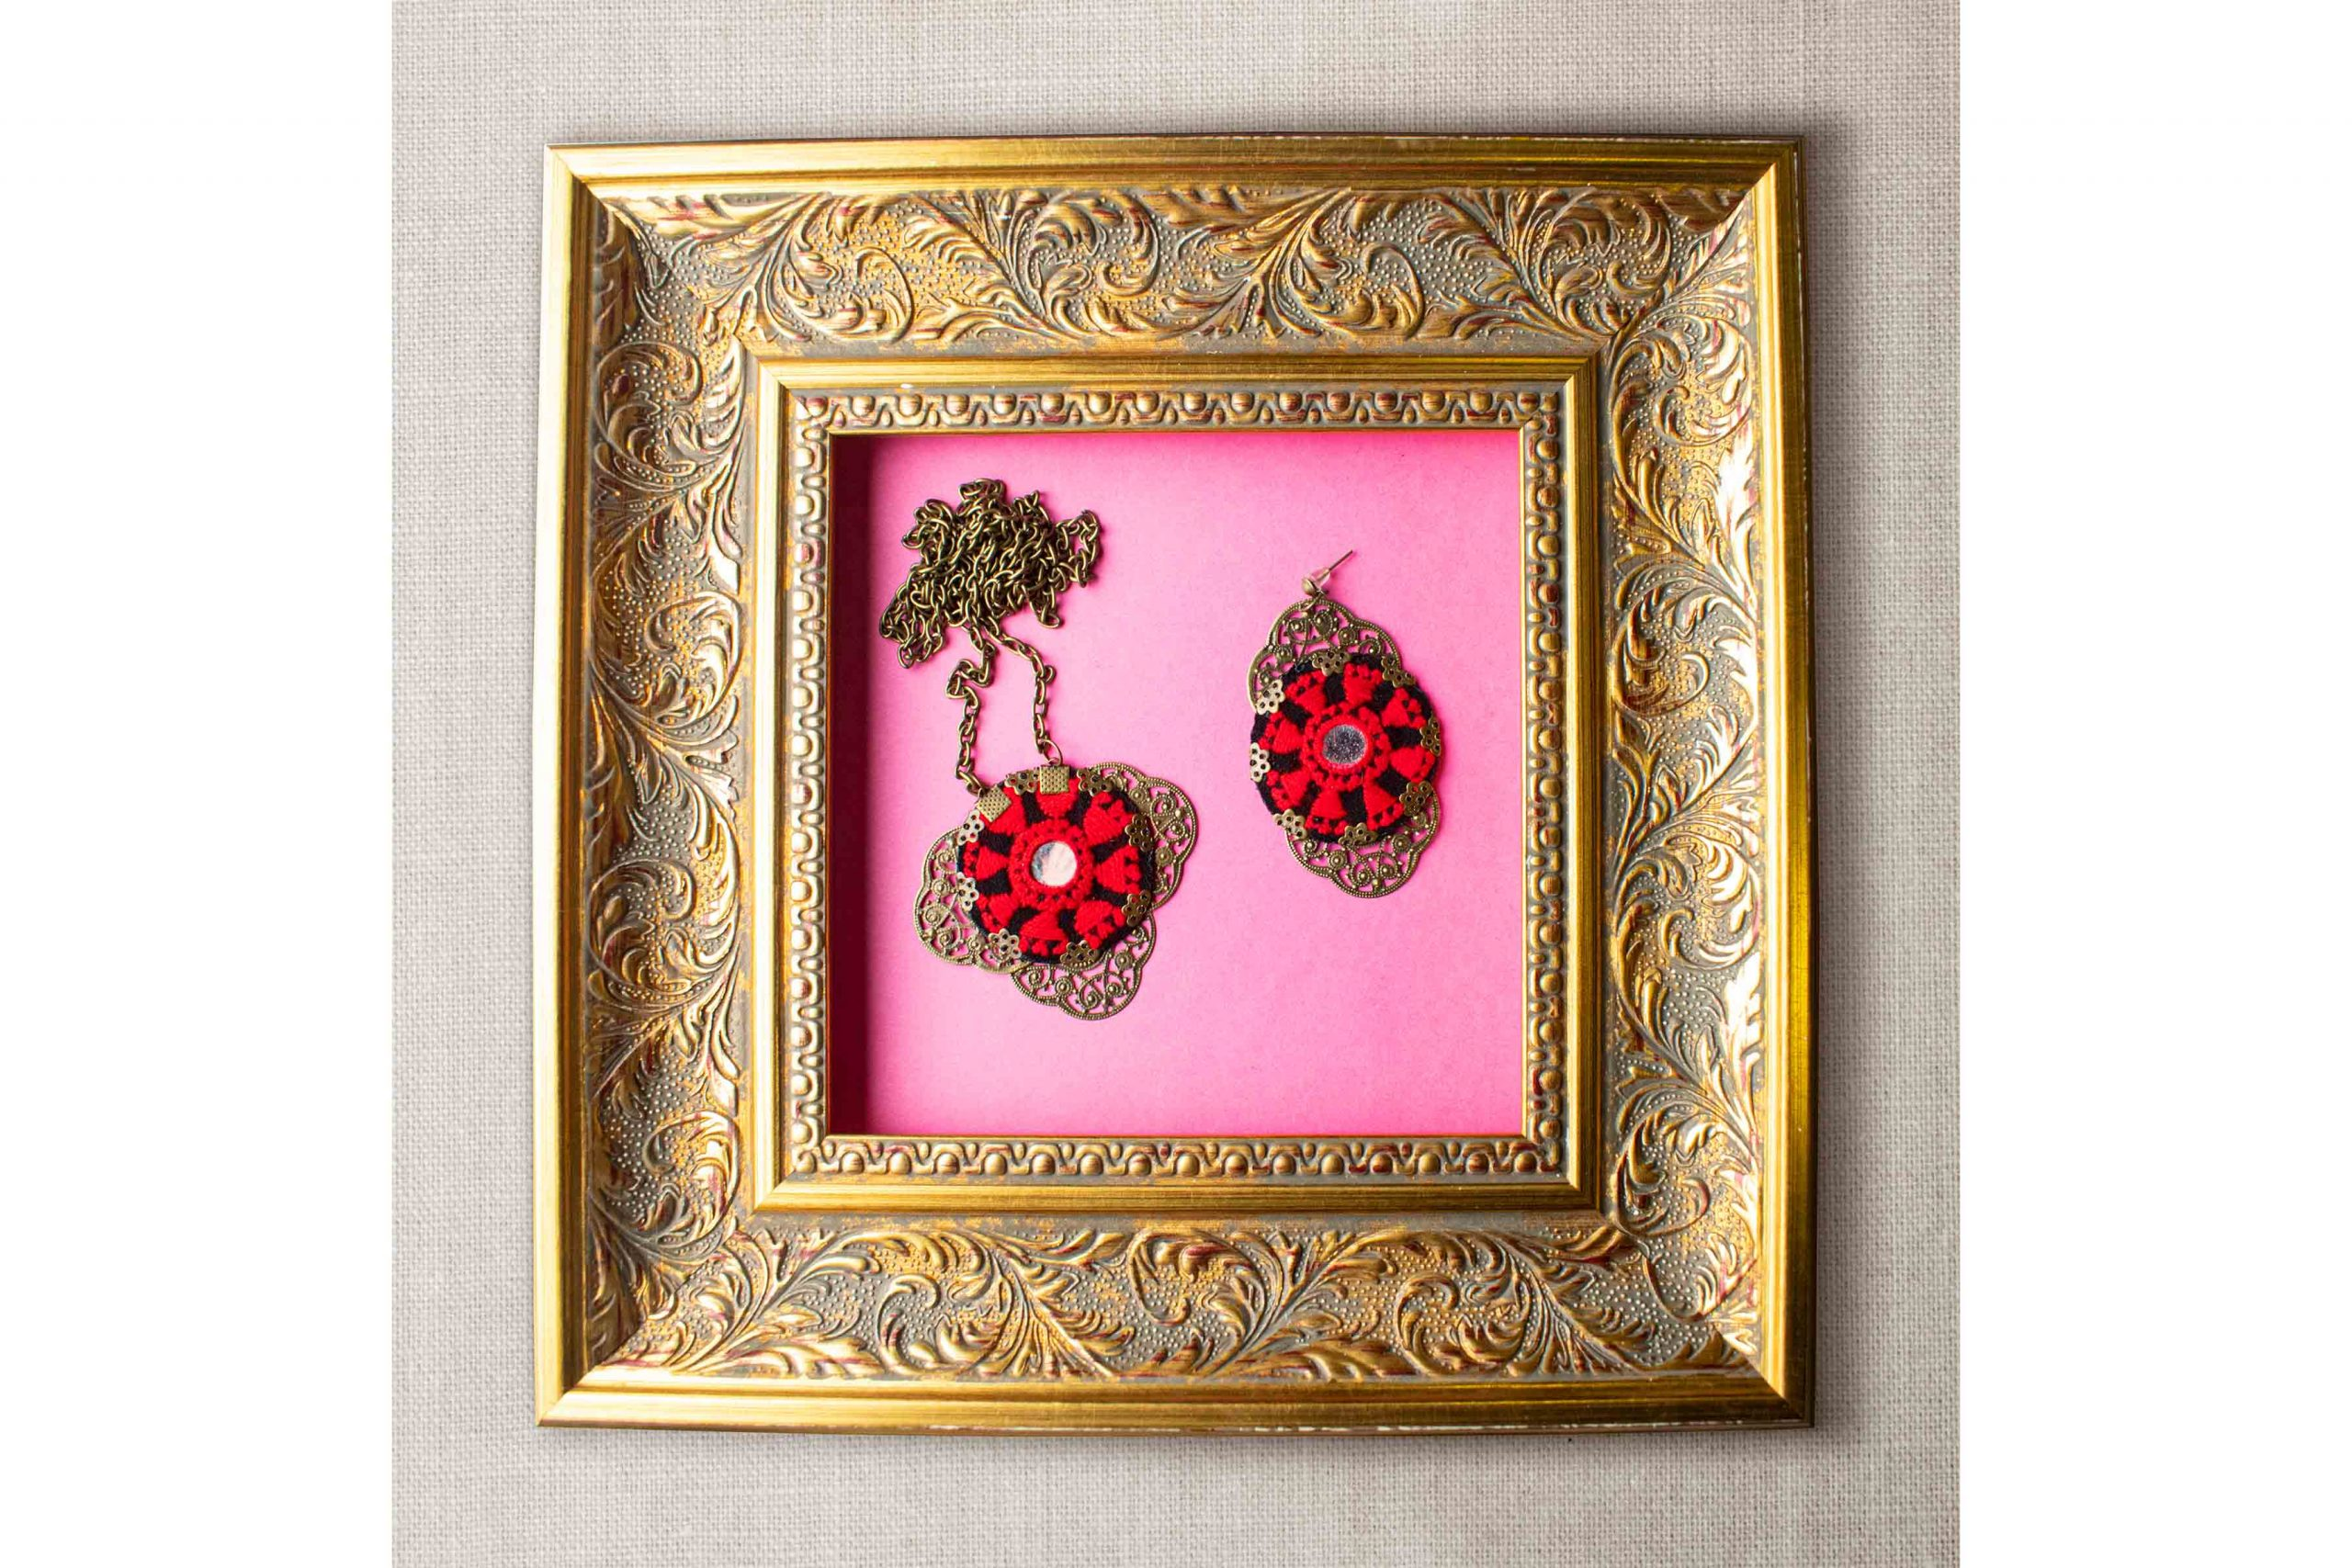 Persian Balochi Embroidery Set, Includes A Necklace and A Pair Of Earring, Floral Red Pattern With Circular Shape, It Is Decorated With A Tiny Mirror In Centre.